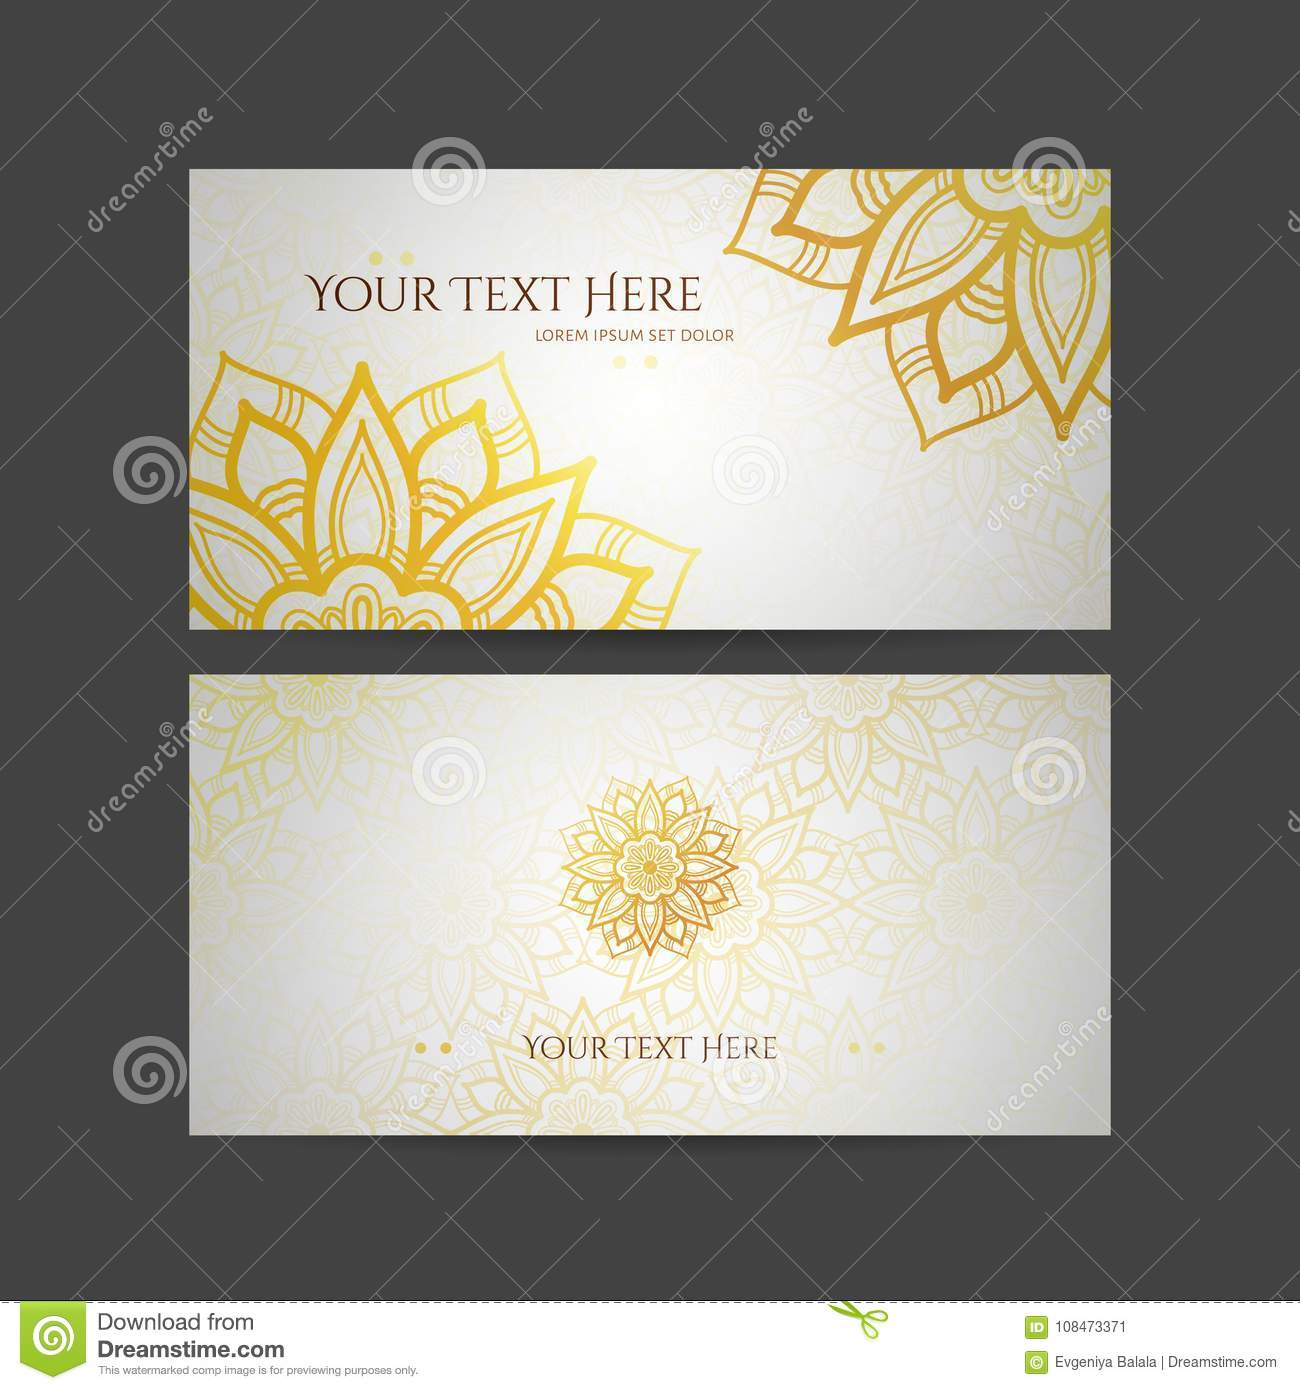 Set of vector design templates business card with floral circle download set of vector design templates business card with floral circle ornament mandala style accmission Image collections